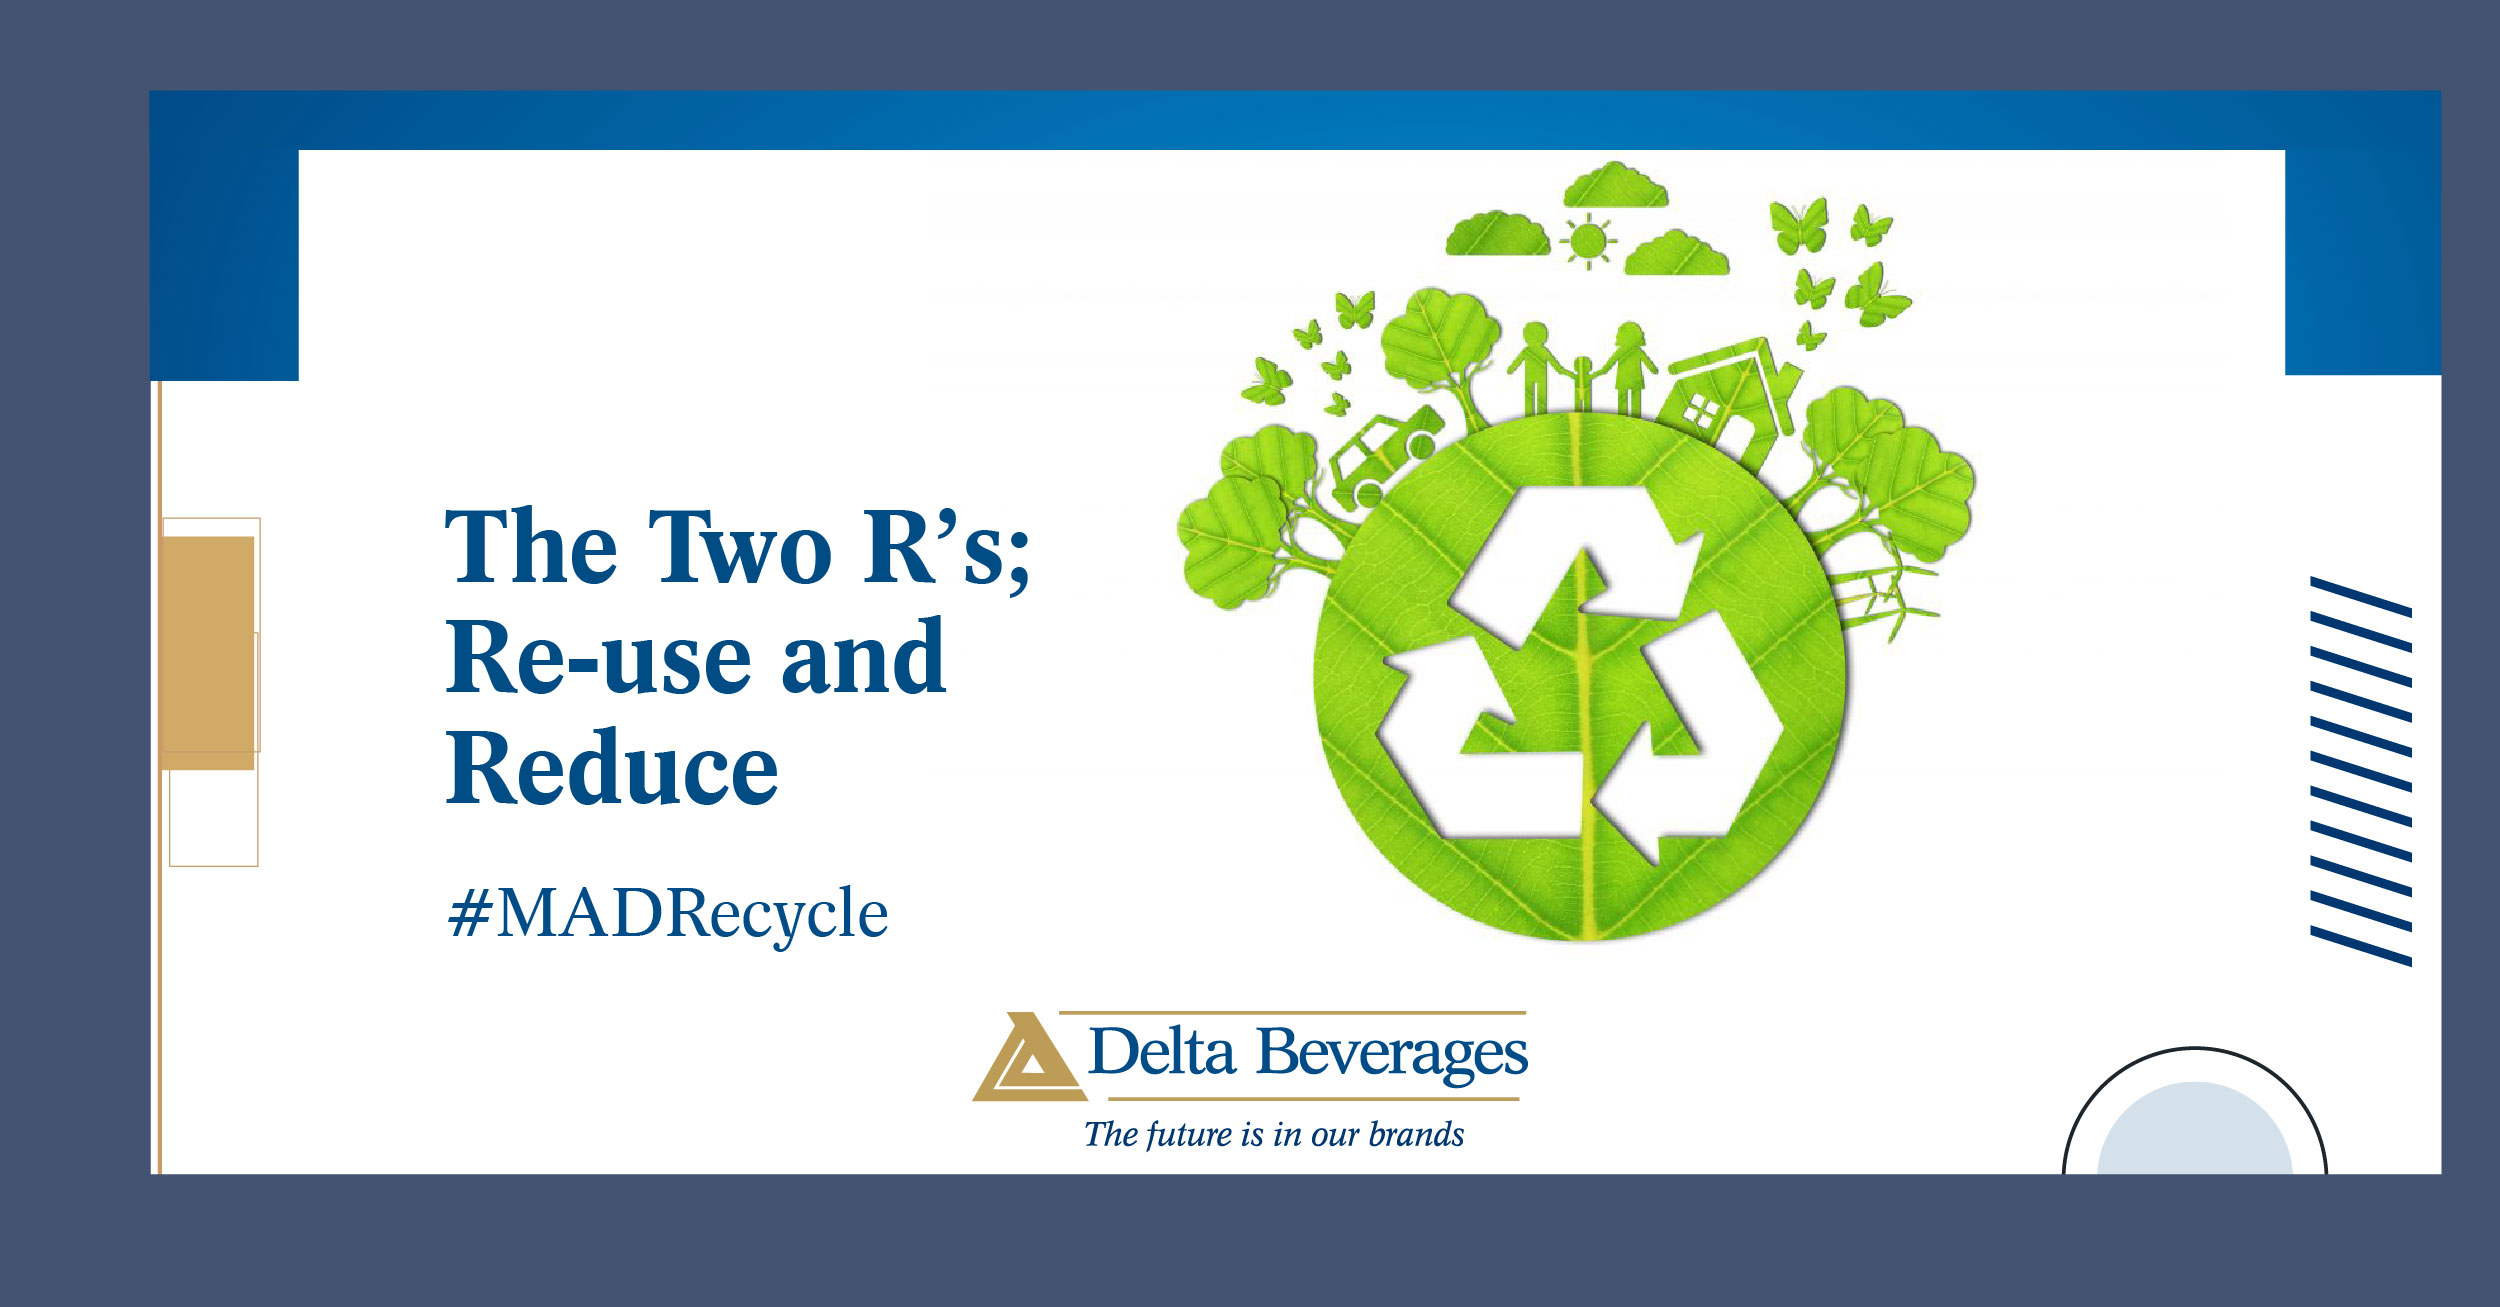 The Two R's; Re-use and Reduce